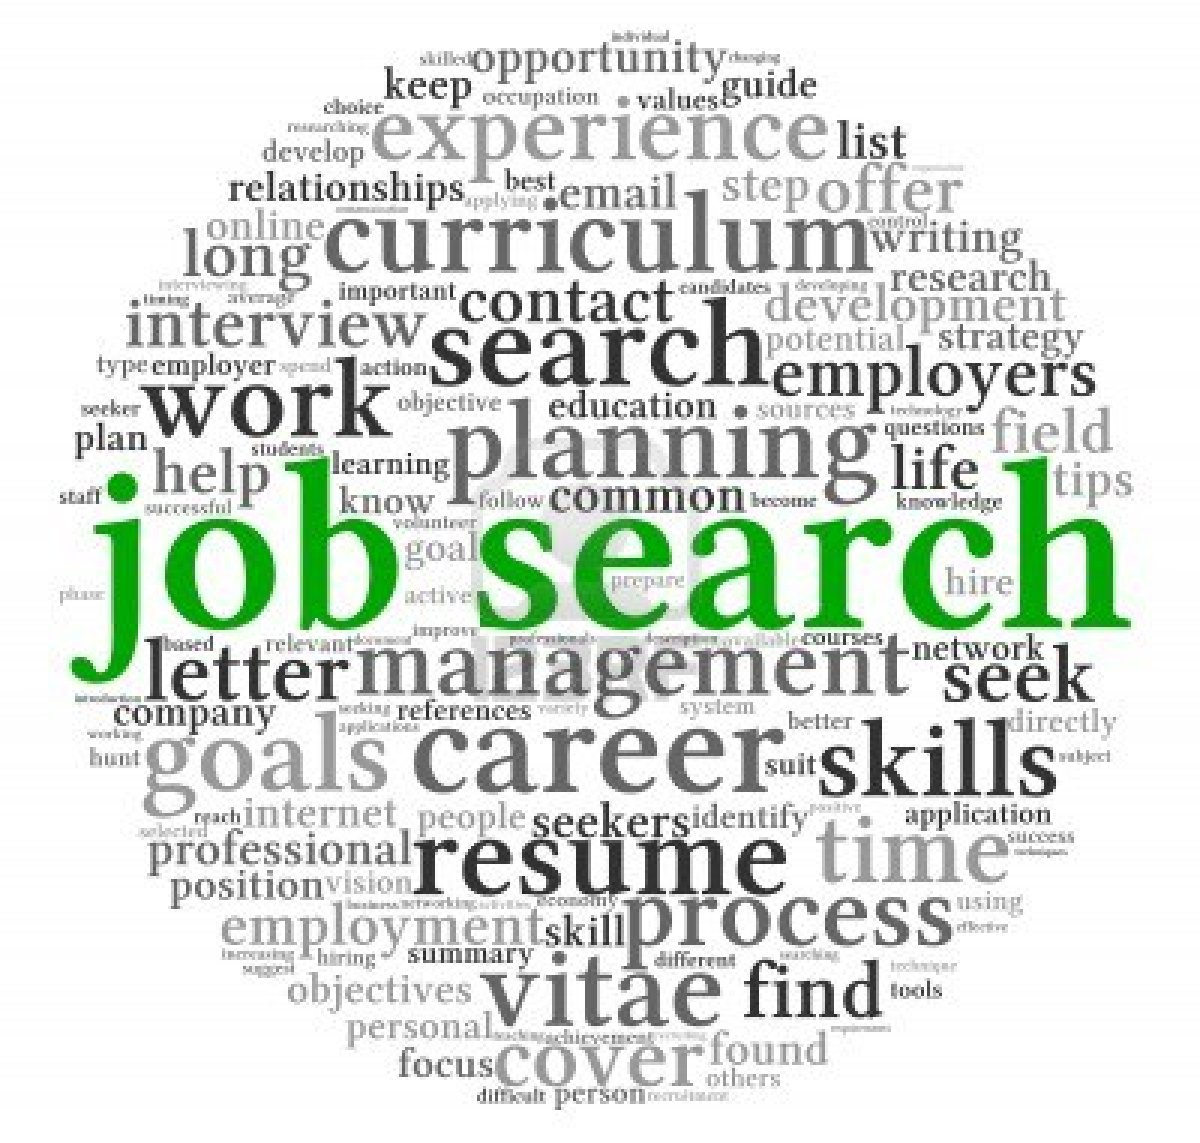 job search blogs brightspyre blog sharing thoughts on human ...